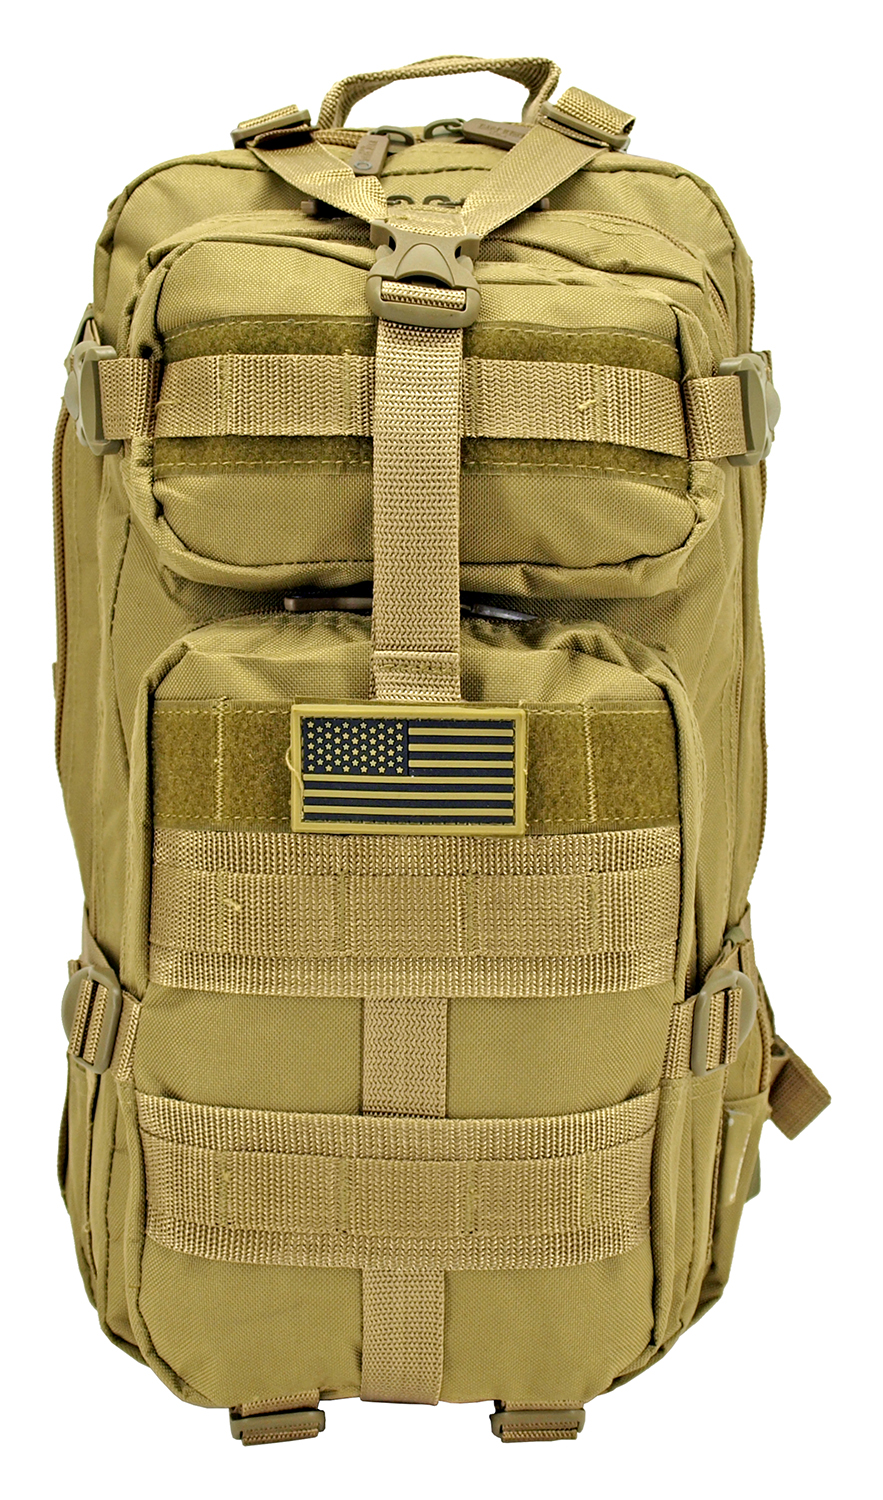 Sortie Mission Pack Backpack - Desert Tan